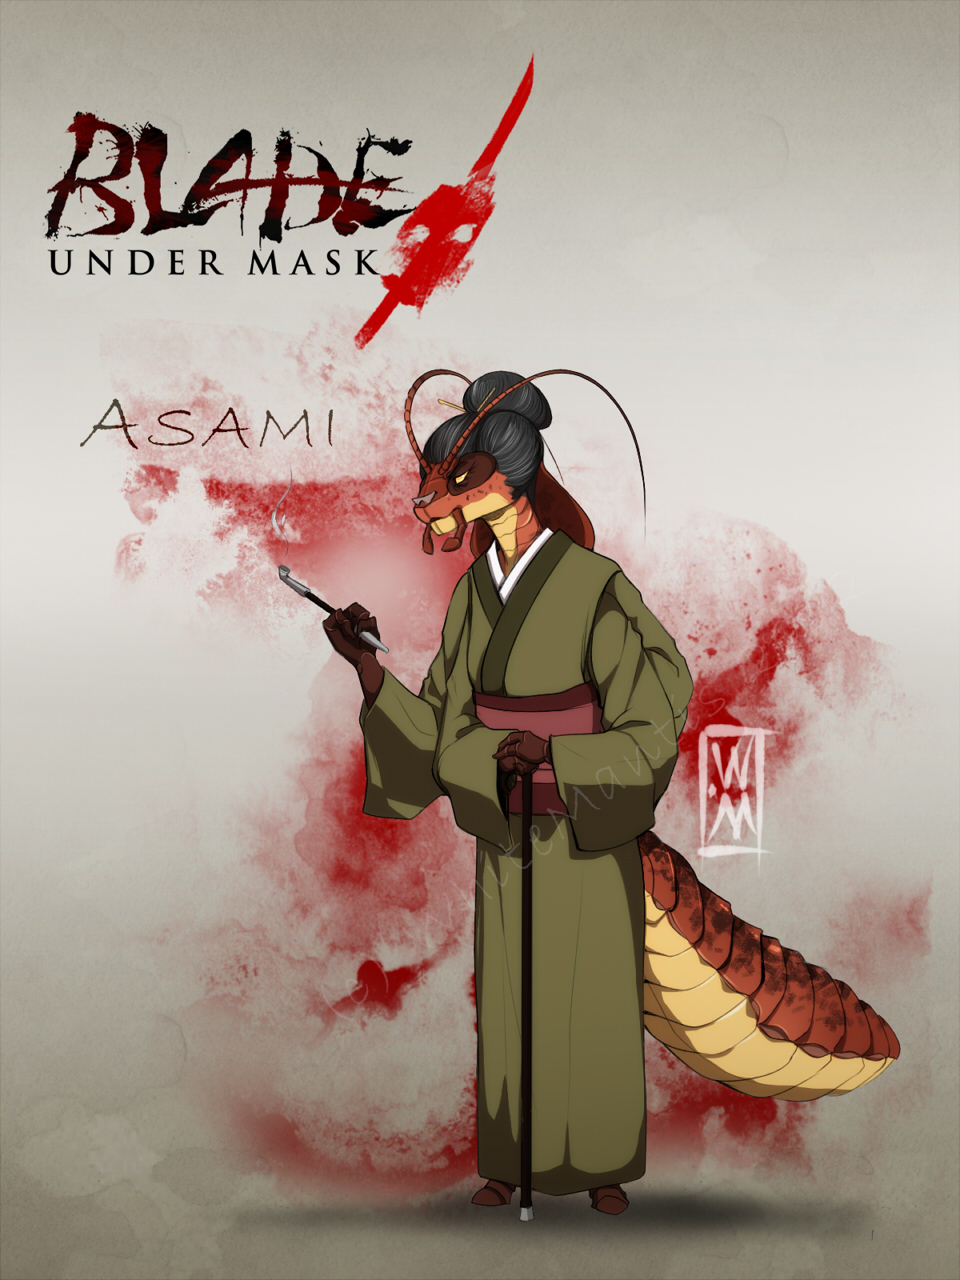 Featured image: Blade Under Mask: Asami